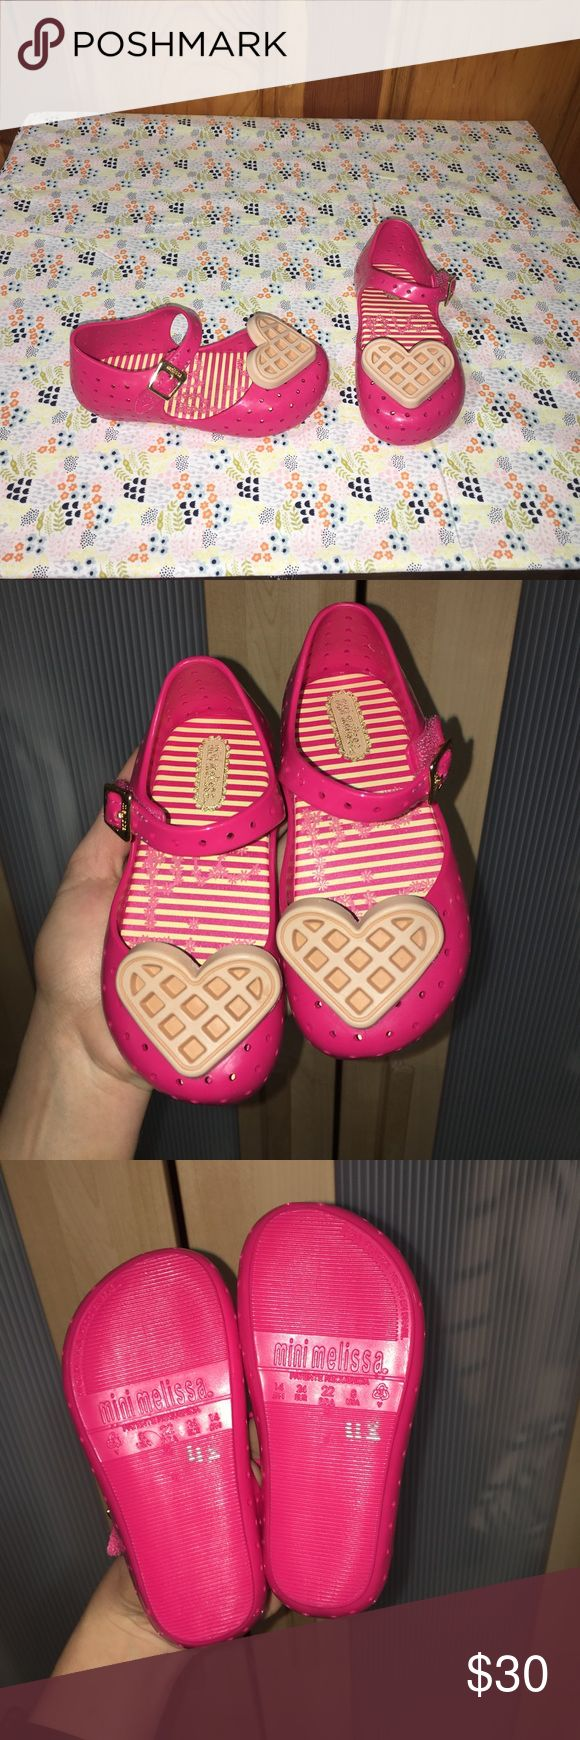 NWOT Girl's Mini Melissa Flats NWOT Girl's Mini Melissa Flats in pink. Hot pink color with light pink hearts at toes. Adorable and easy to wash!! Girl's size 8. Mini Melissa Shoes